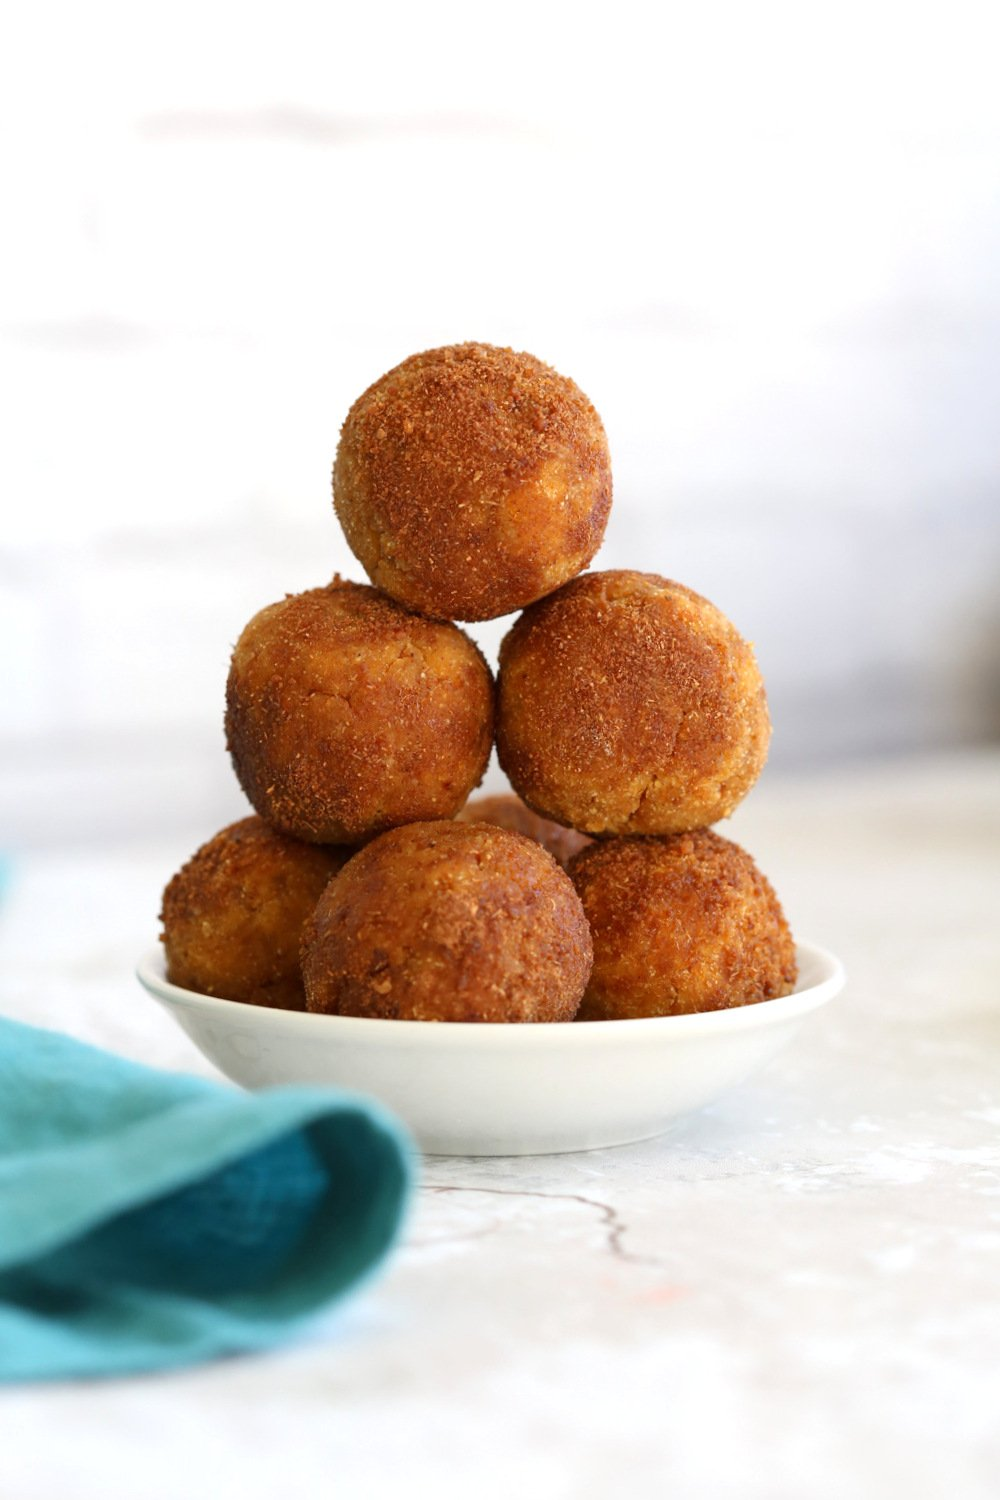 Vegan Pumpkin Pie Truffles or No Bake Pumpkin Donut Holes. 7 Ingredient No oil, No Refined Sugar These fudgy bites are perfect for fall. #VeganRicha #Vegan #Glutenfree #Soyfree #Recipe